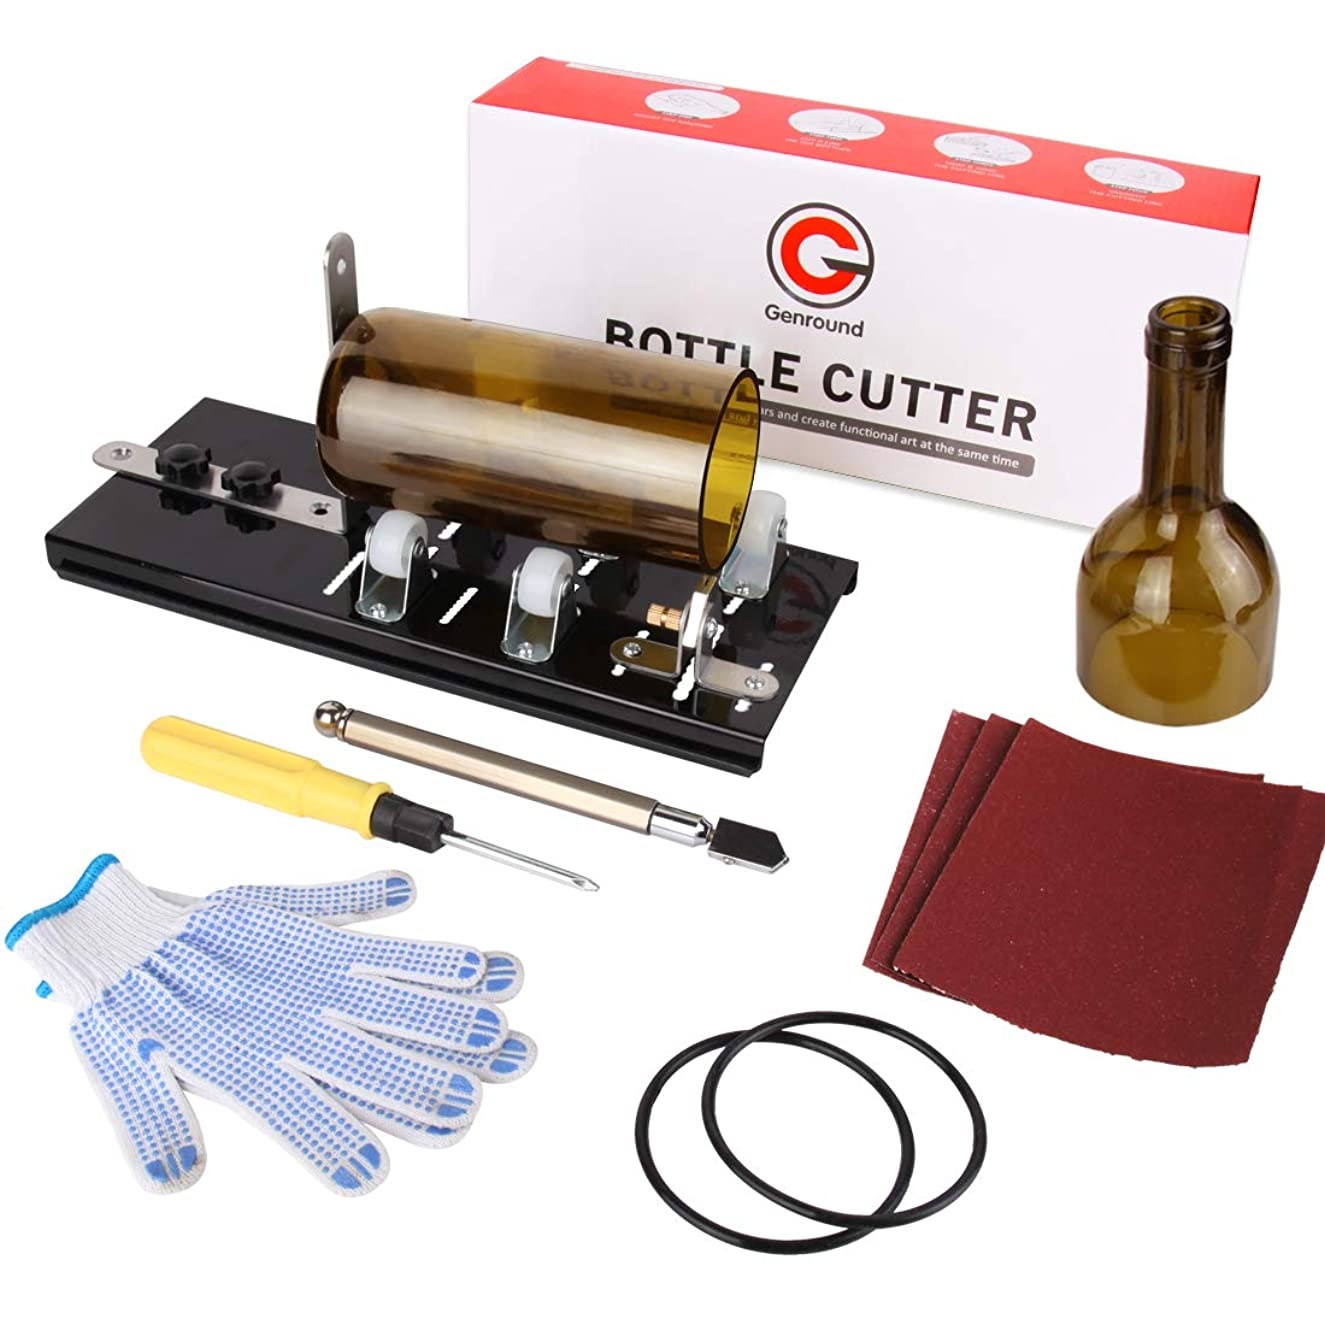 Genround G2.1 Glass Bottle Cutter Bundle Glass Cutter Cut Round Bottle from Neck to Bottom for DIY Projects, Glass Cutter Tool with Oil Feed Glass Cutting Tool, Gloves, Sanding Paper, Isolation Rings